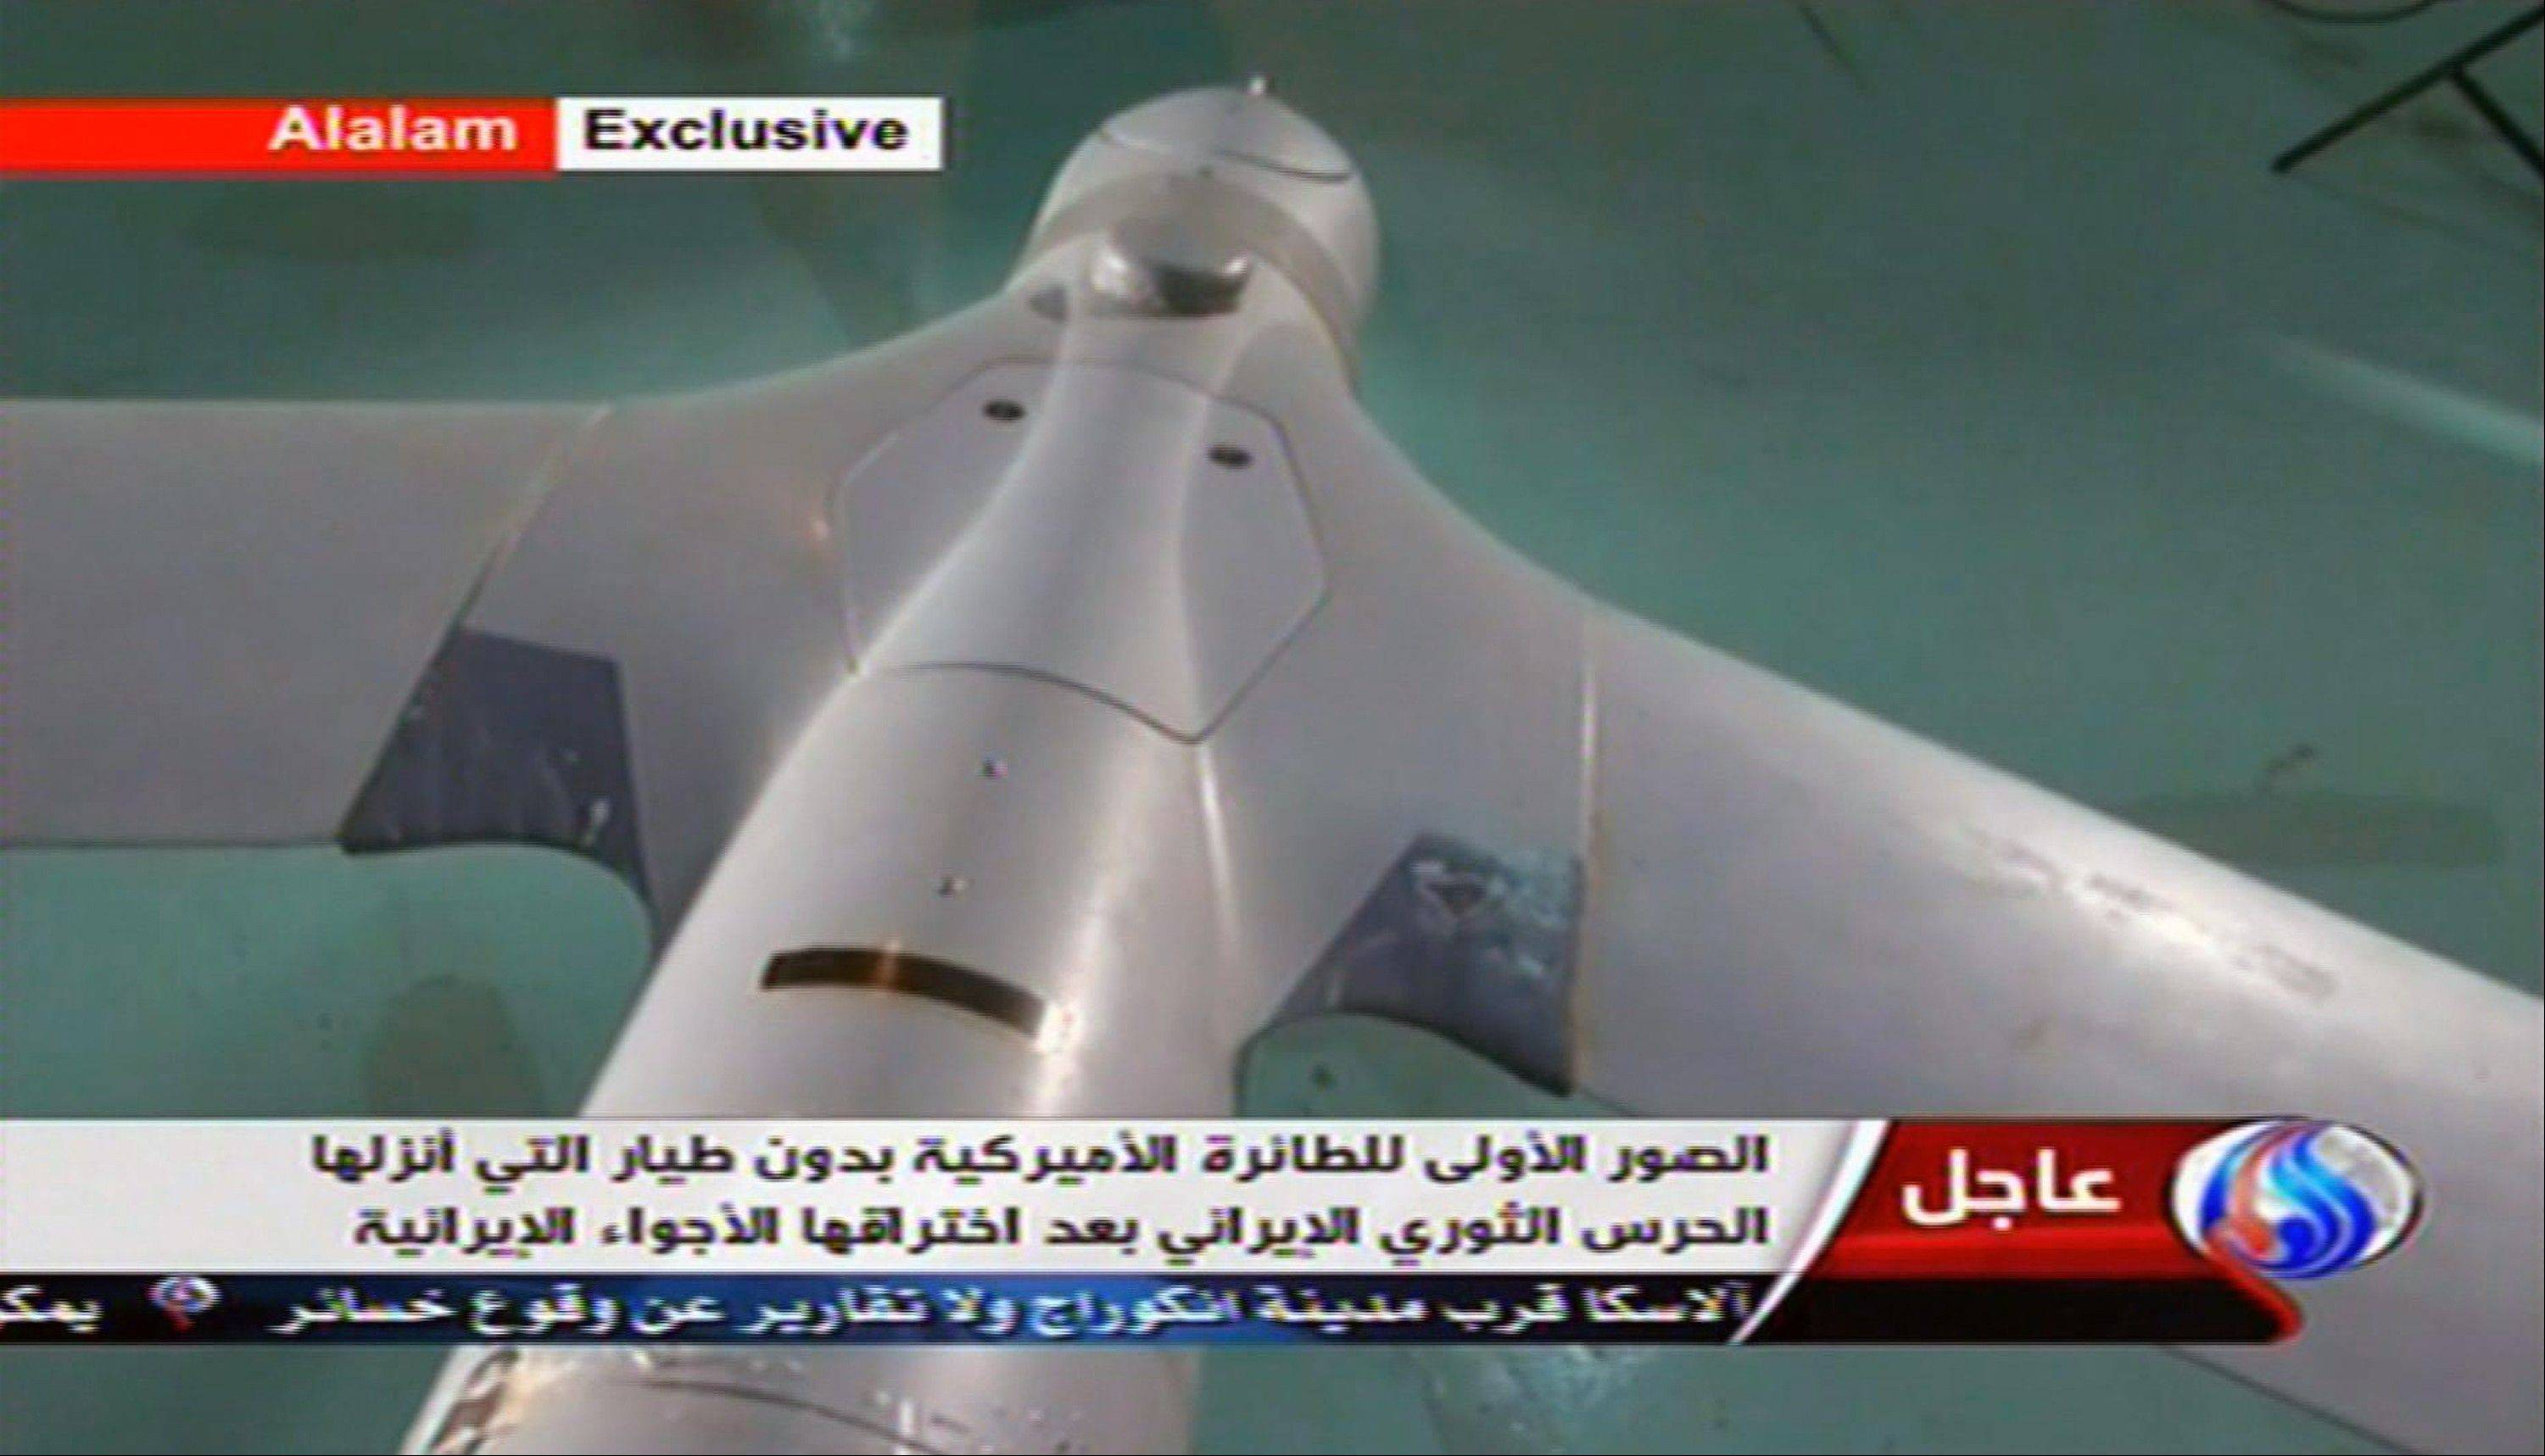 This image taken from the Iranian state TV�s Arabic-language channel Al-Alam shows what they purport to be an intact U.S. drone aircraft captured after it entered Iranian airspace over the Persian Gulf. The U.S. Navy said all its unmanned aircraft in the region were �fully accounted for,� but a prominent lawmaker in Tehran said Wednesday Iran has material evidence to prove that it has captured an American unmanned aircraft.